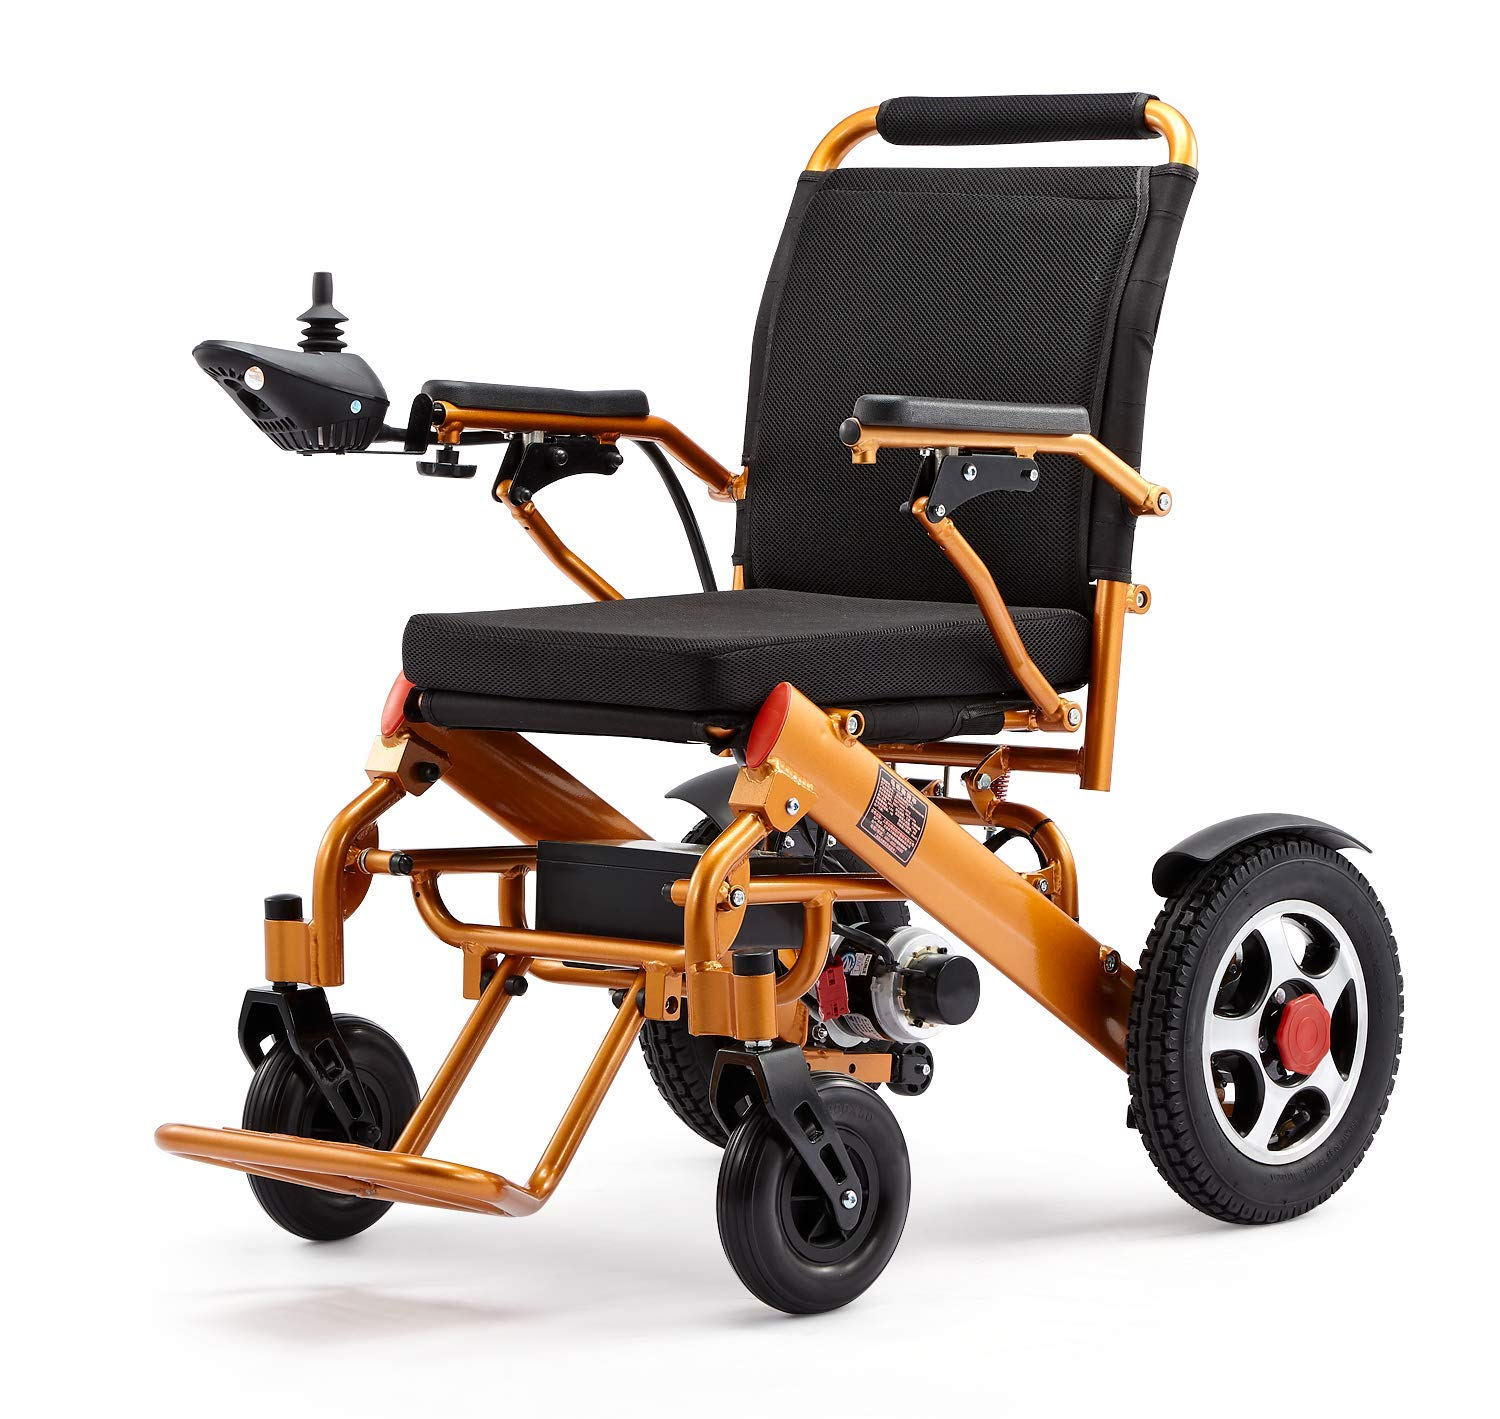 Amazon.com: 2019 New Remote Control Electric Wheelchairs Silla de Ruedas Electrica para Adultos FDA Approved Transport Friendly Lightweight Folding Electric ...